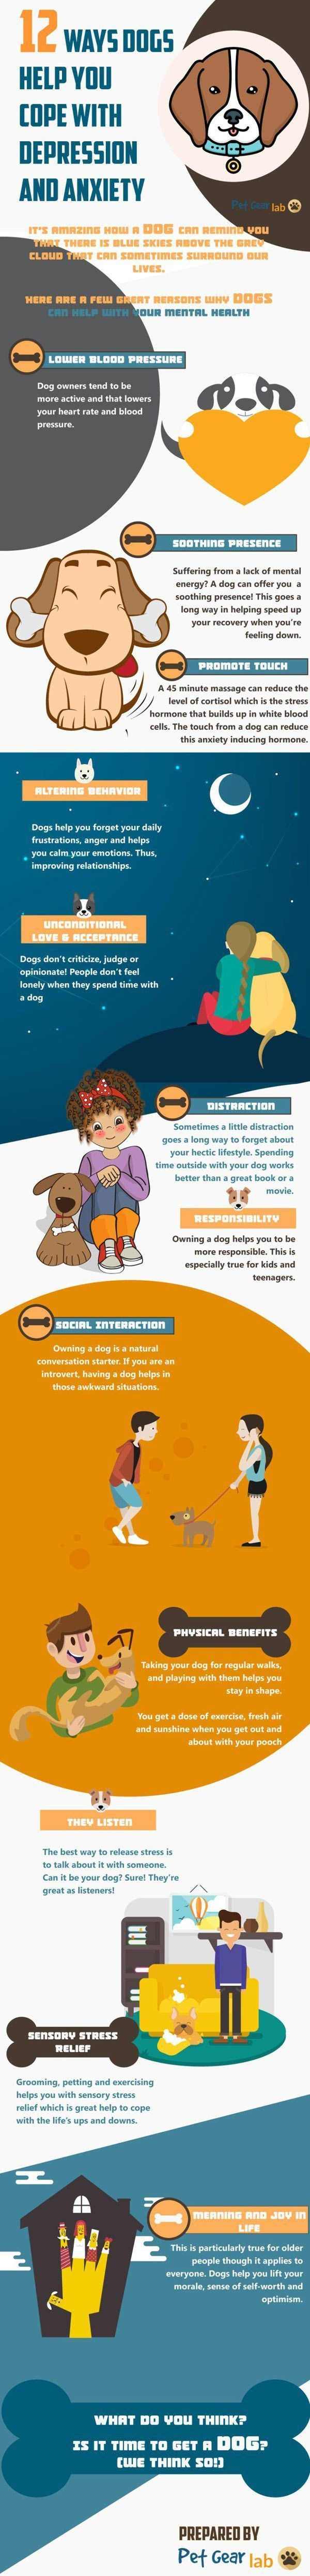 The World Health Organisation declared April 7 as World Health Day focusing on mental health. This year-long campaign aims to educate, raise awareness and help people suffering from mental illness … How does your four-legged friend help you? www.pinterest.com/mentallyinteresting/dealing-with-depression?utm_content=bufferf56f3&utm_medium=social&utm_source=pinterest.com&utm_campaign=buffer